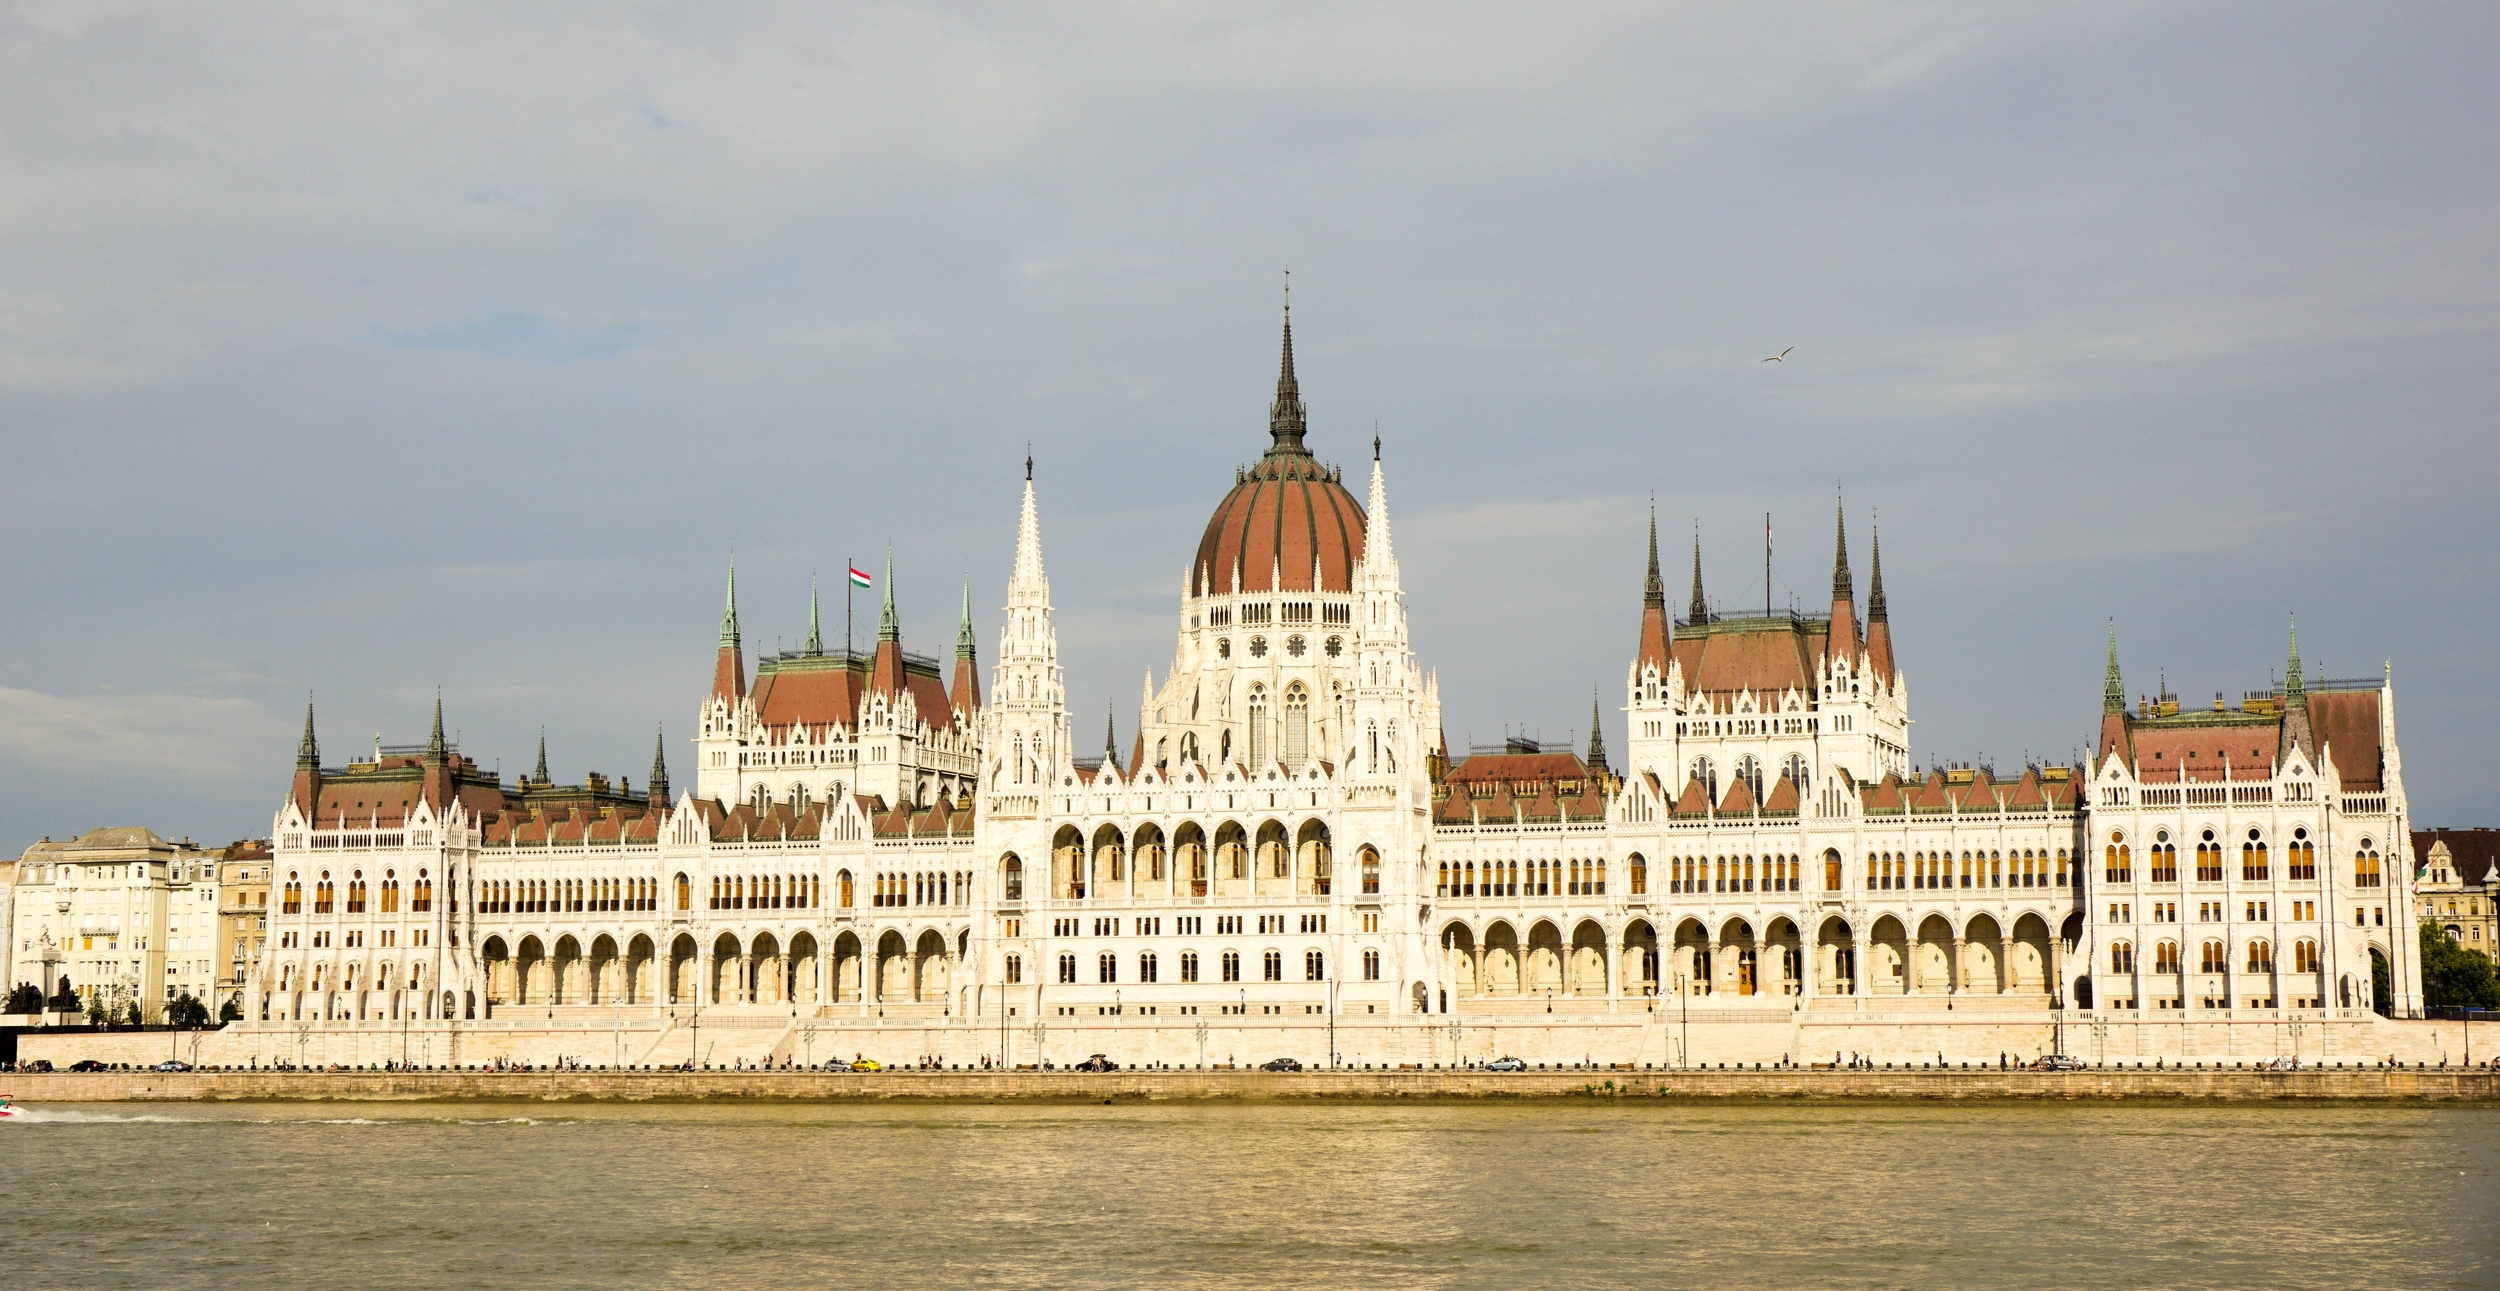 Intolerance has been on the rise in Hungary since the fall of the Berlin Wall. Far-right politicians have made several indenciery remarks inciting religious intolerance. Legislation doesn't seem far behind, either.